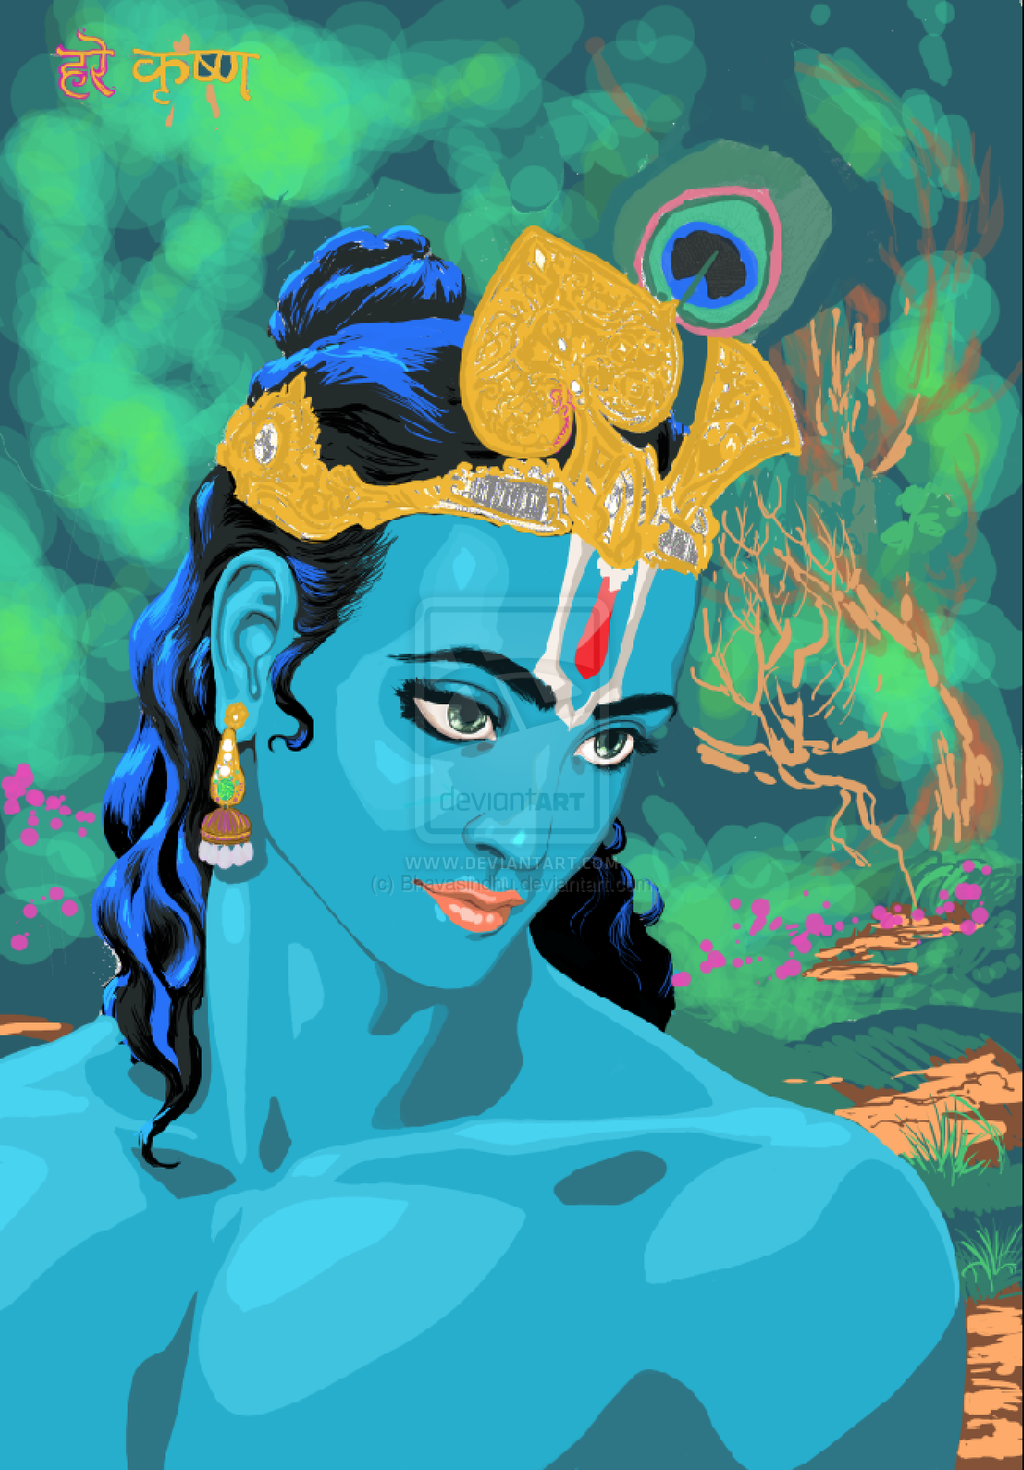 photoshop_of_sketch_of_shri_krishna_by_bhavasindhu-d7mb9bh